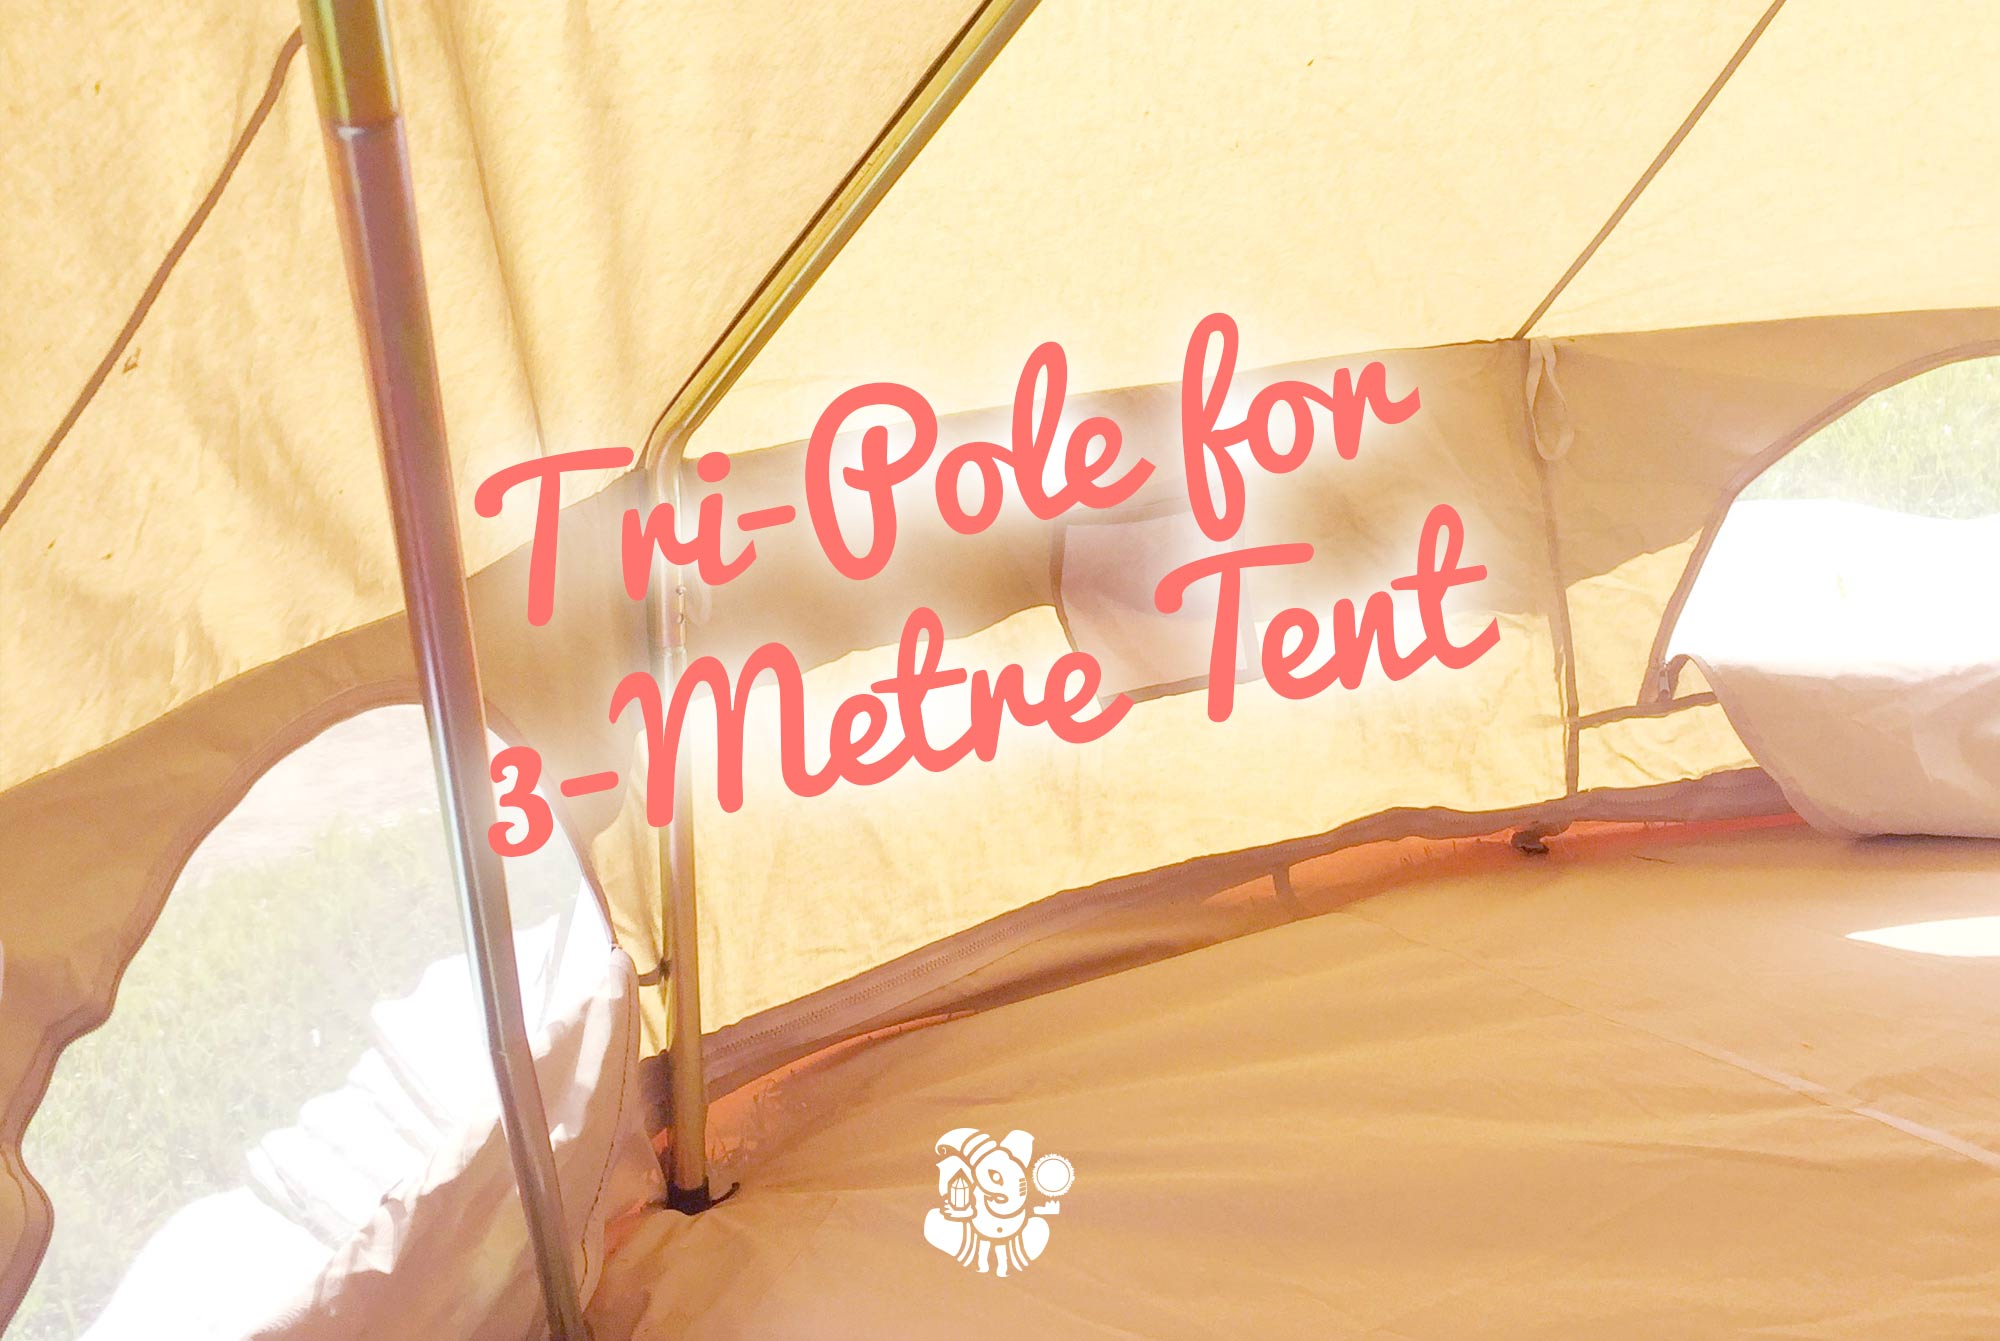 Tripole for 4 metre bell tent